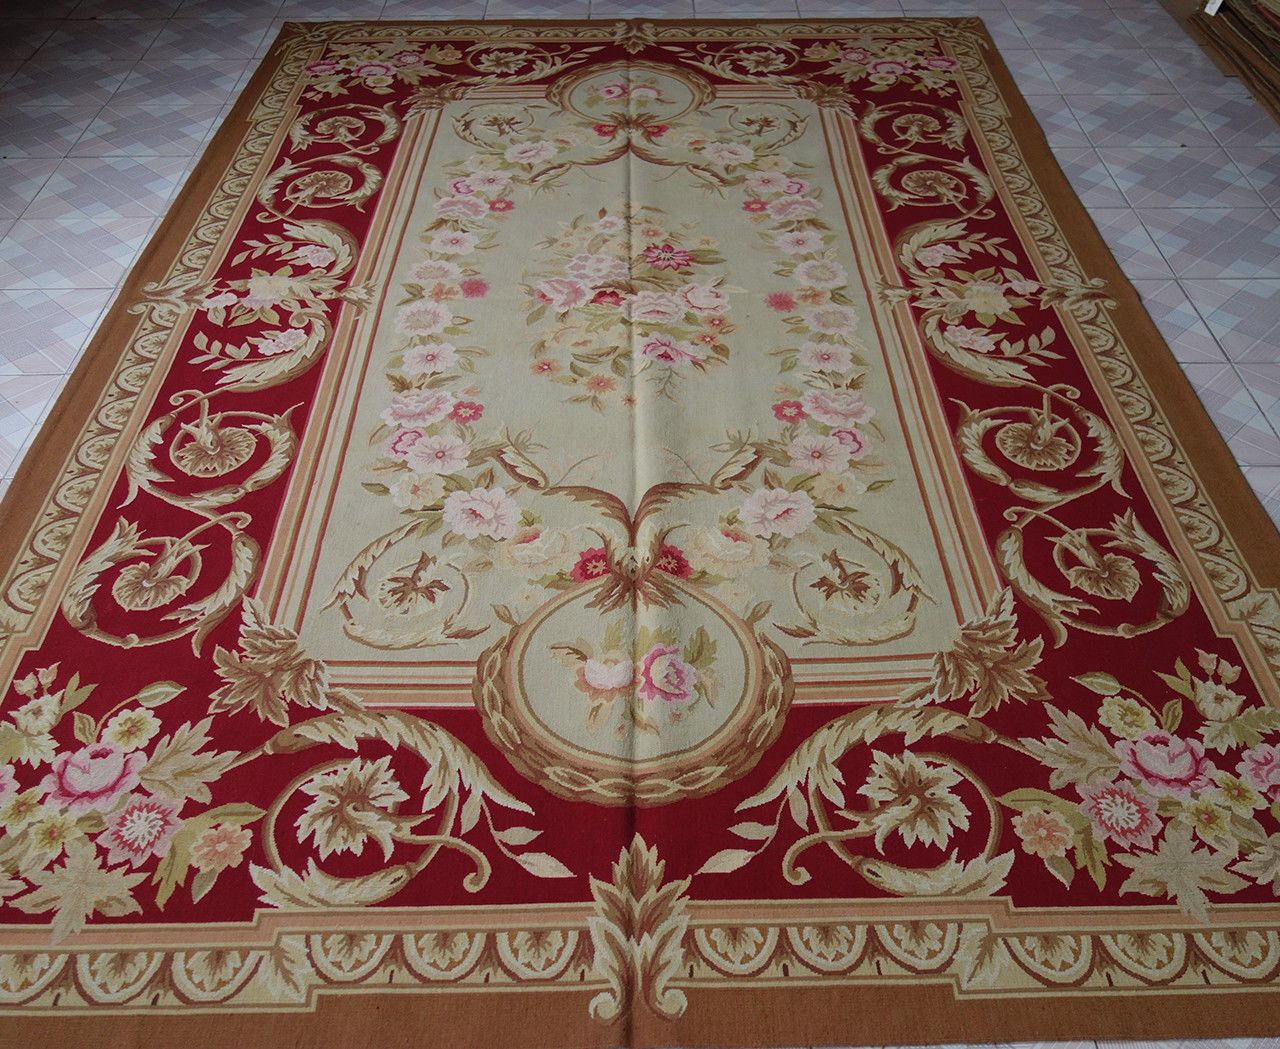 2 X 3 Meter Large Burgandy Beige Living Fine Room Decor Aubusson Rug Ebay